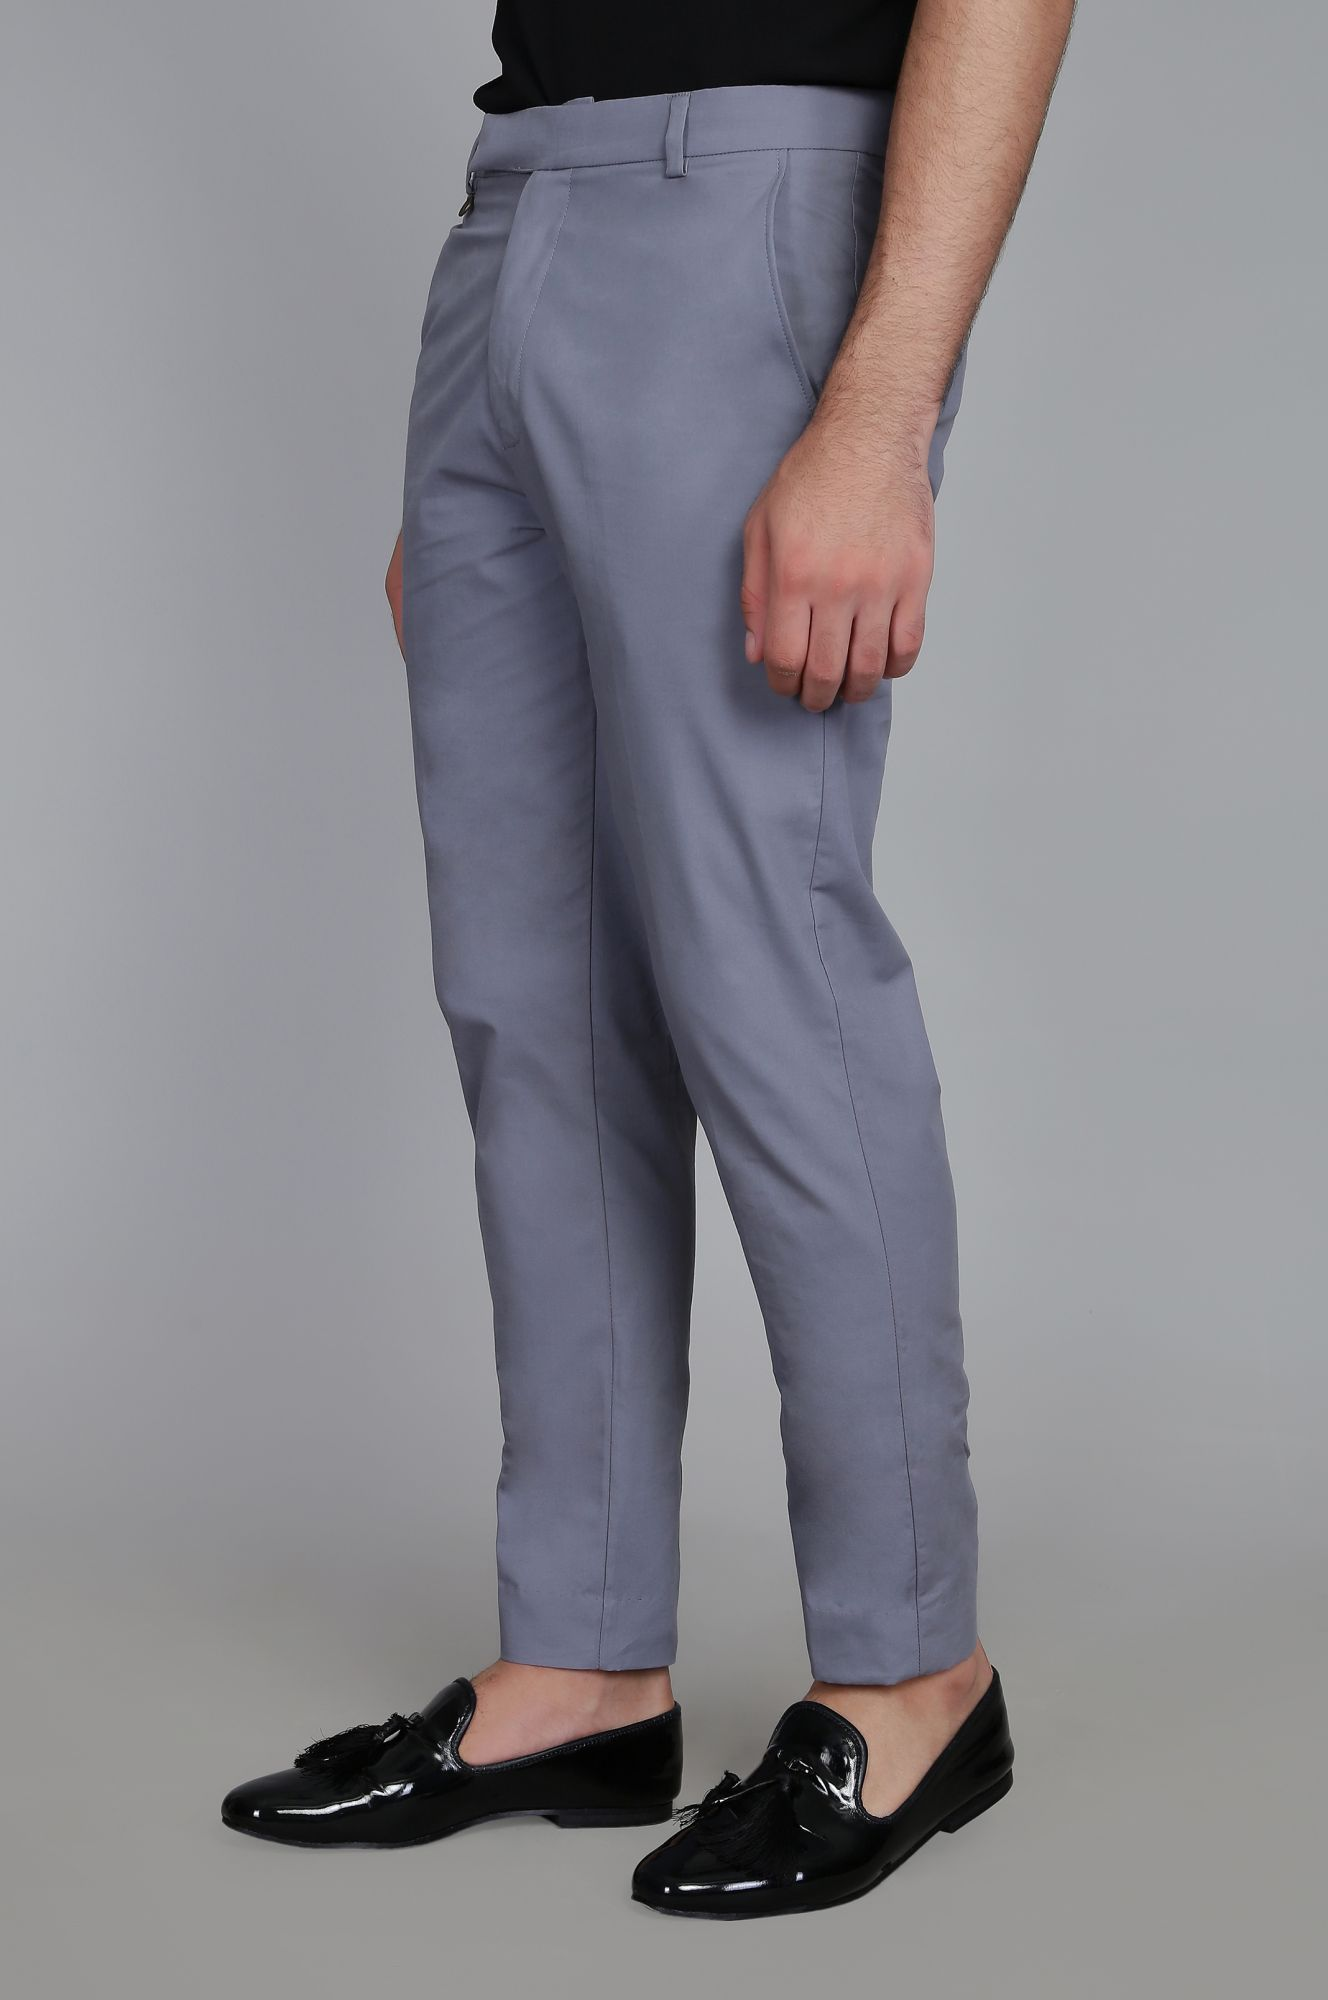 Grey Tailored Fit Pants